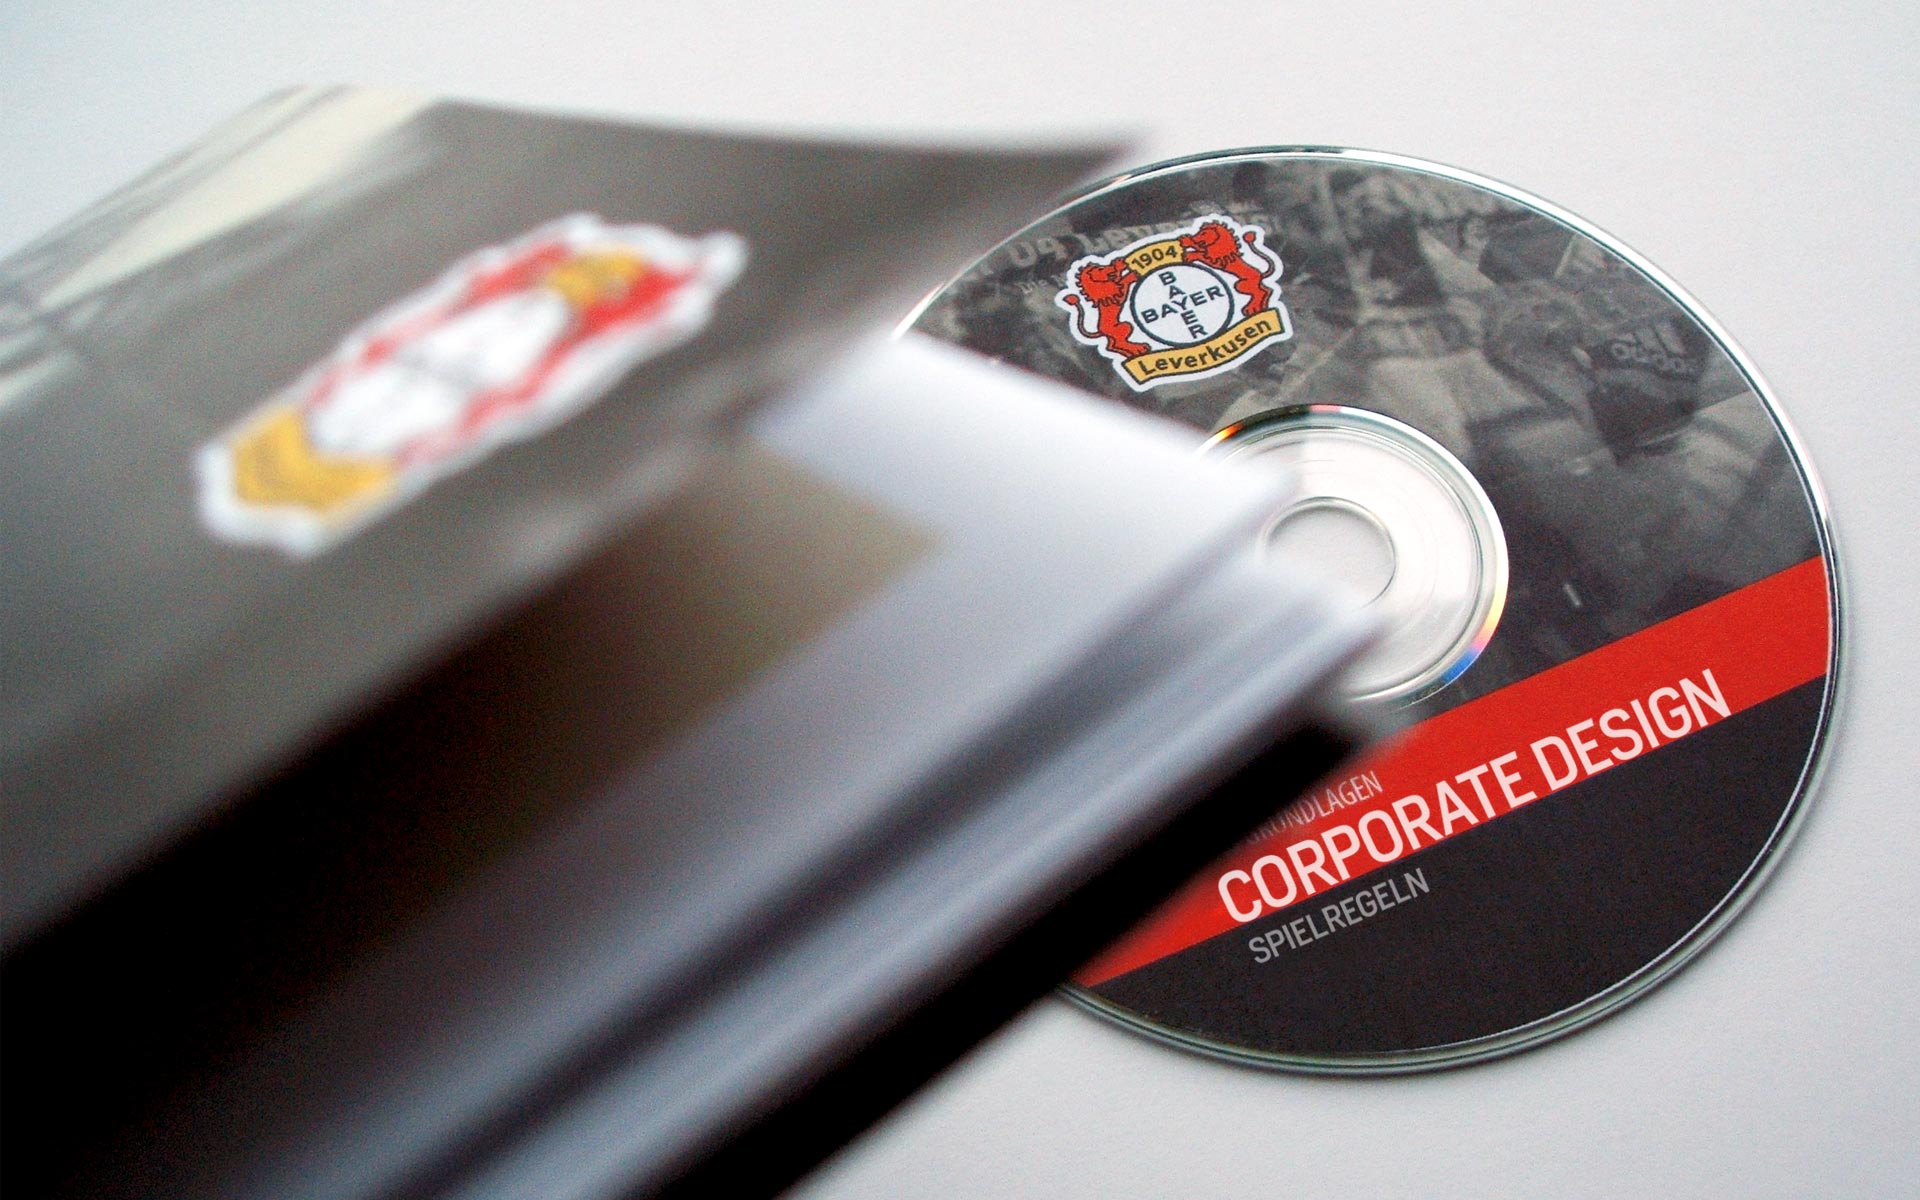 Bayer 04 Leverkusen Corporate Design, CD-Manual und CD-Rom